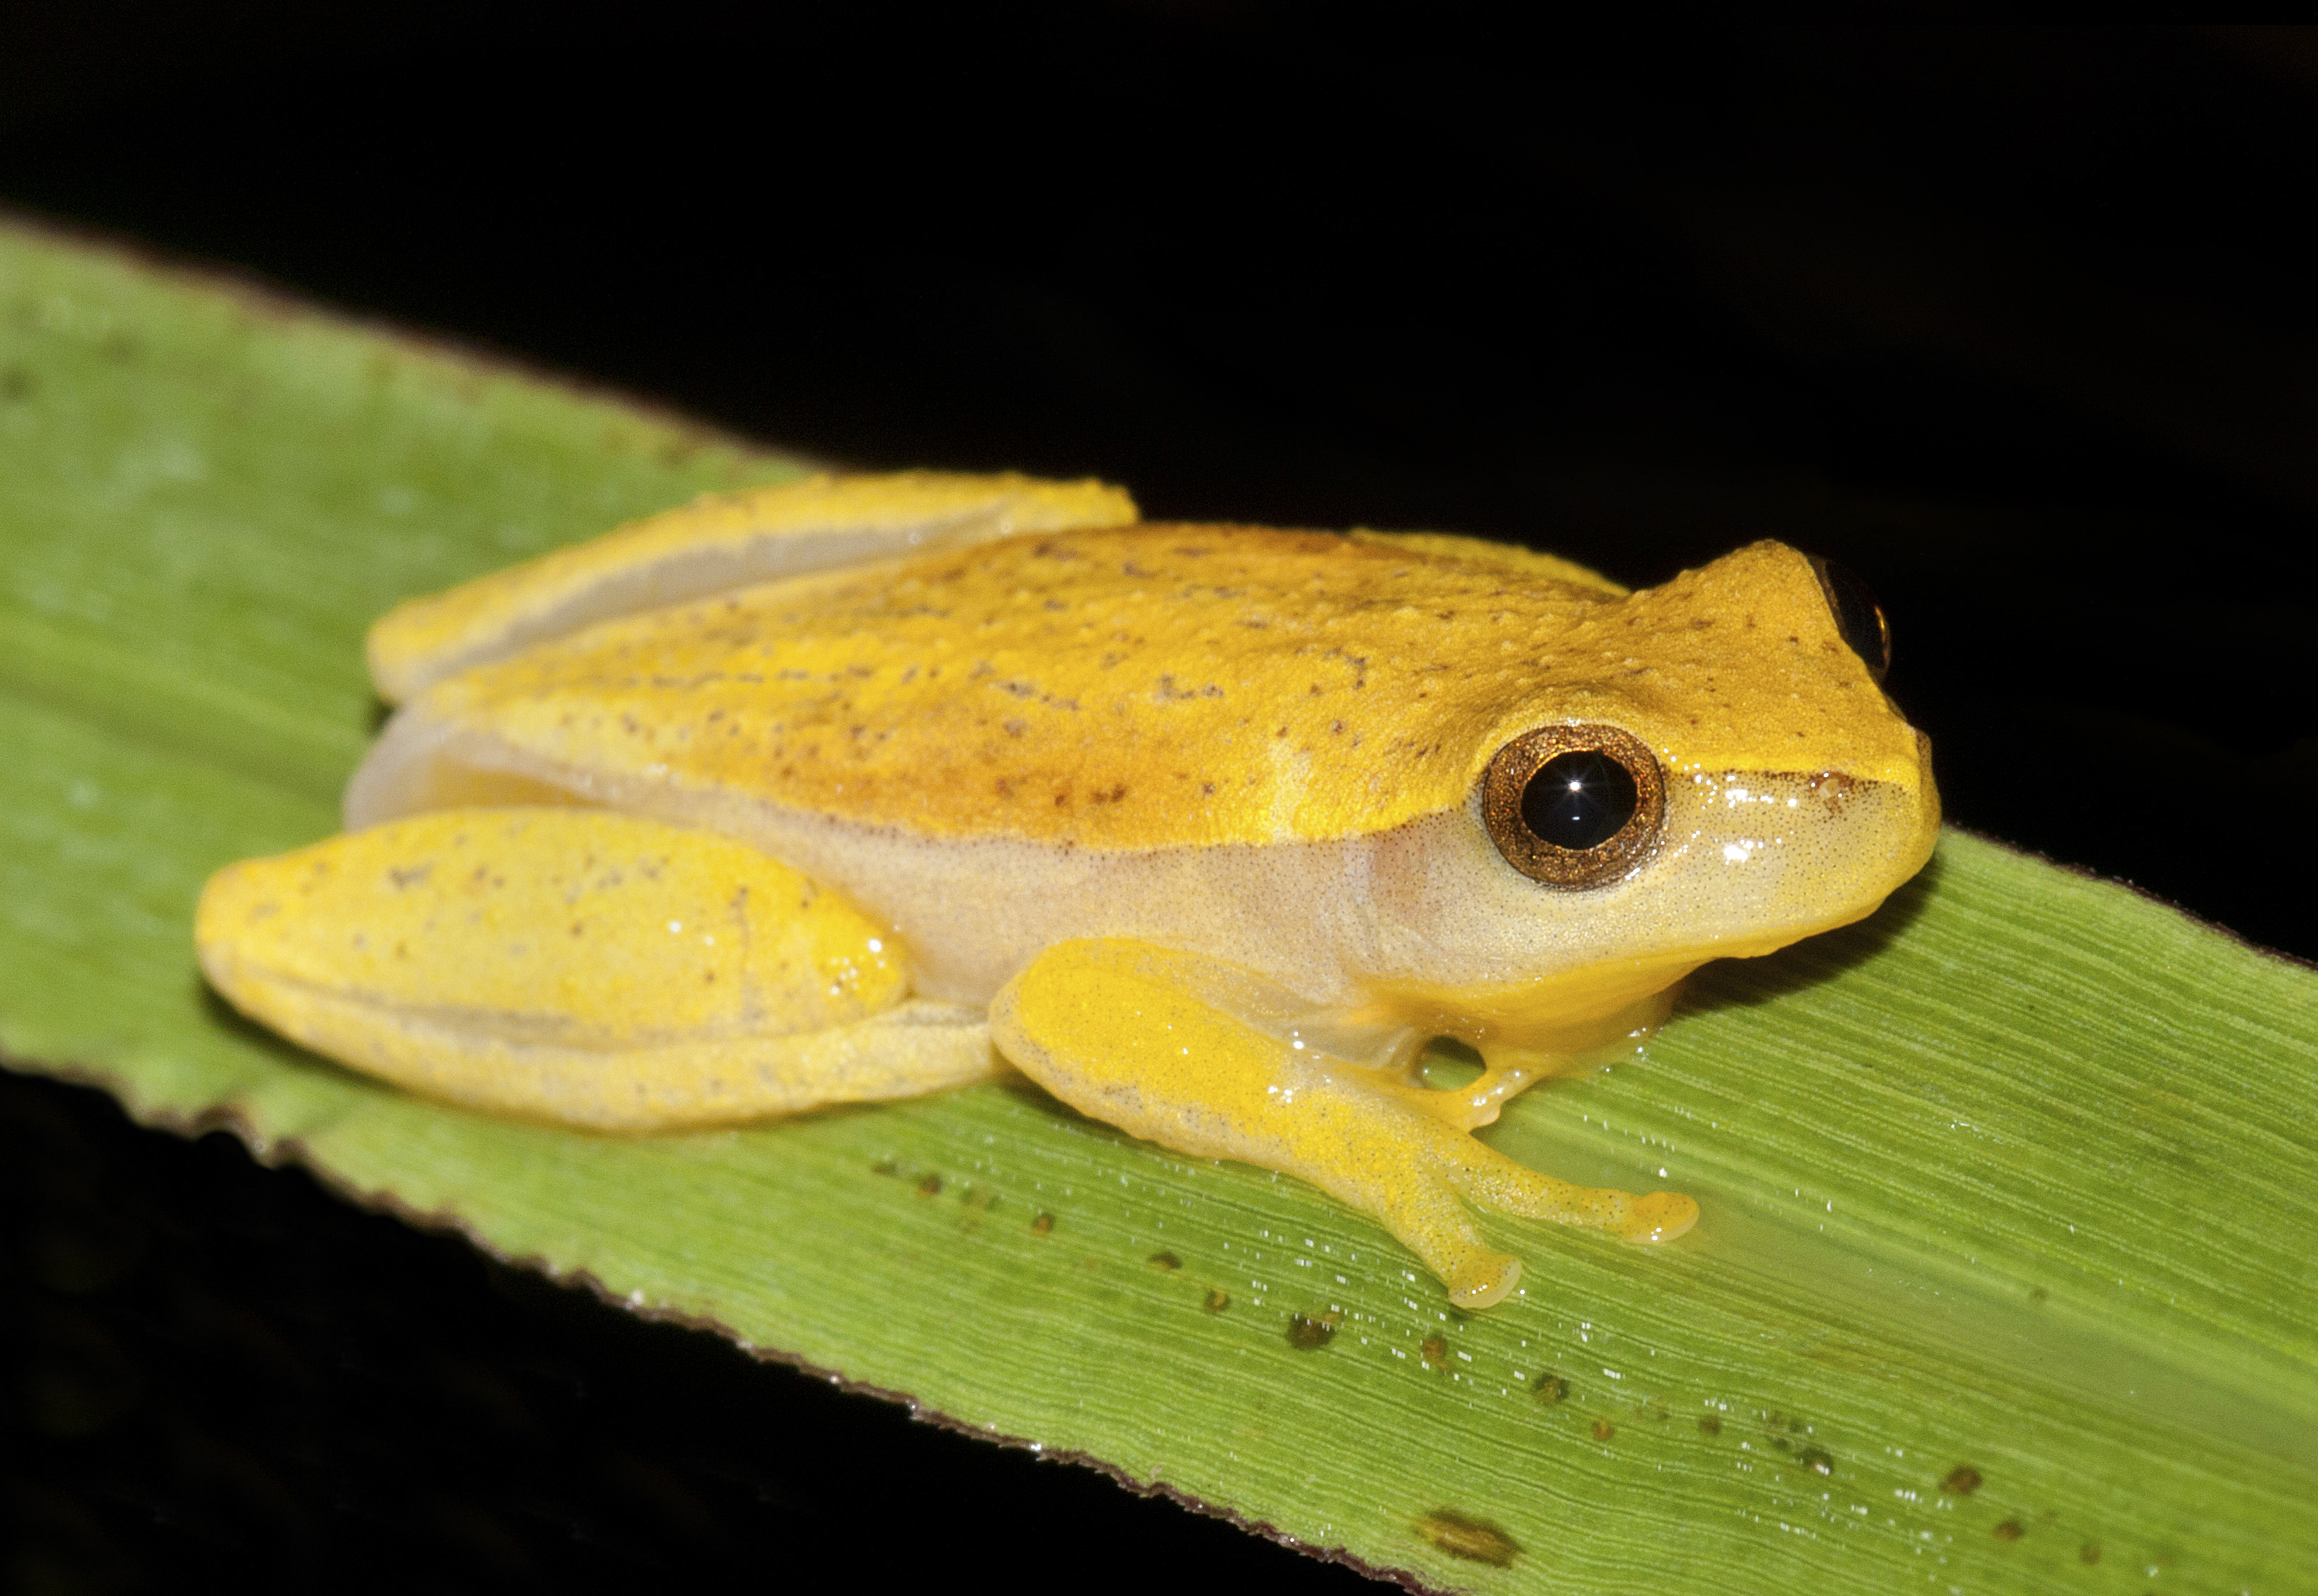 Demerara Falls Tree Frog 2 moreover Wooden Frog in addition Hymnal moreover Brongersma's tree frog additionally Boite C 65 102 2726. on frog family